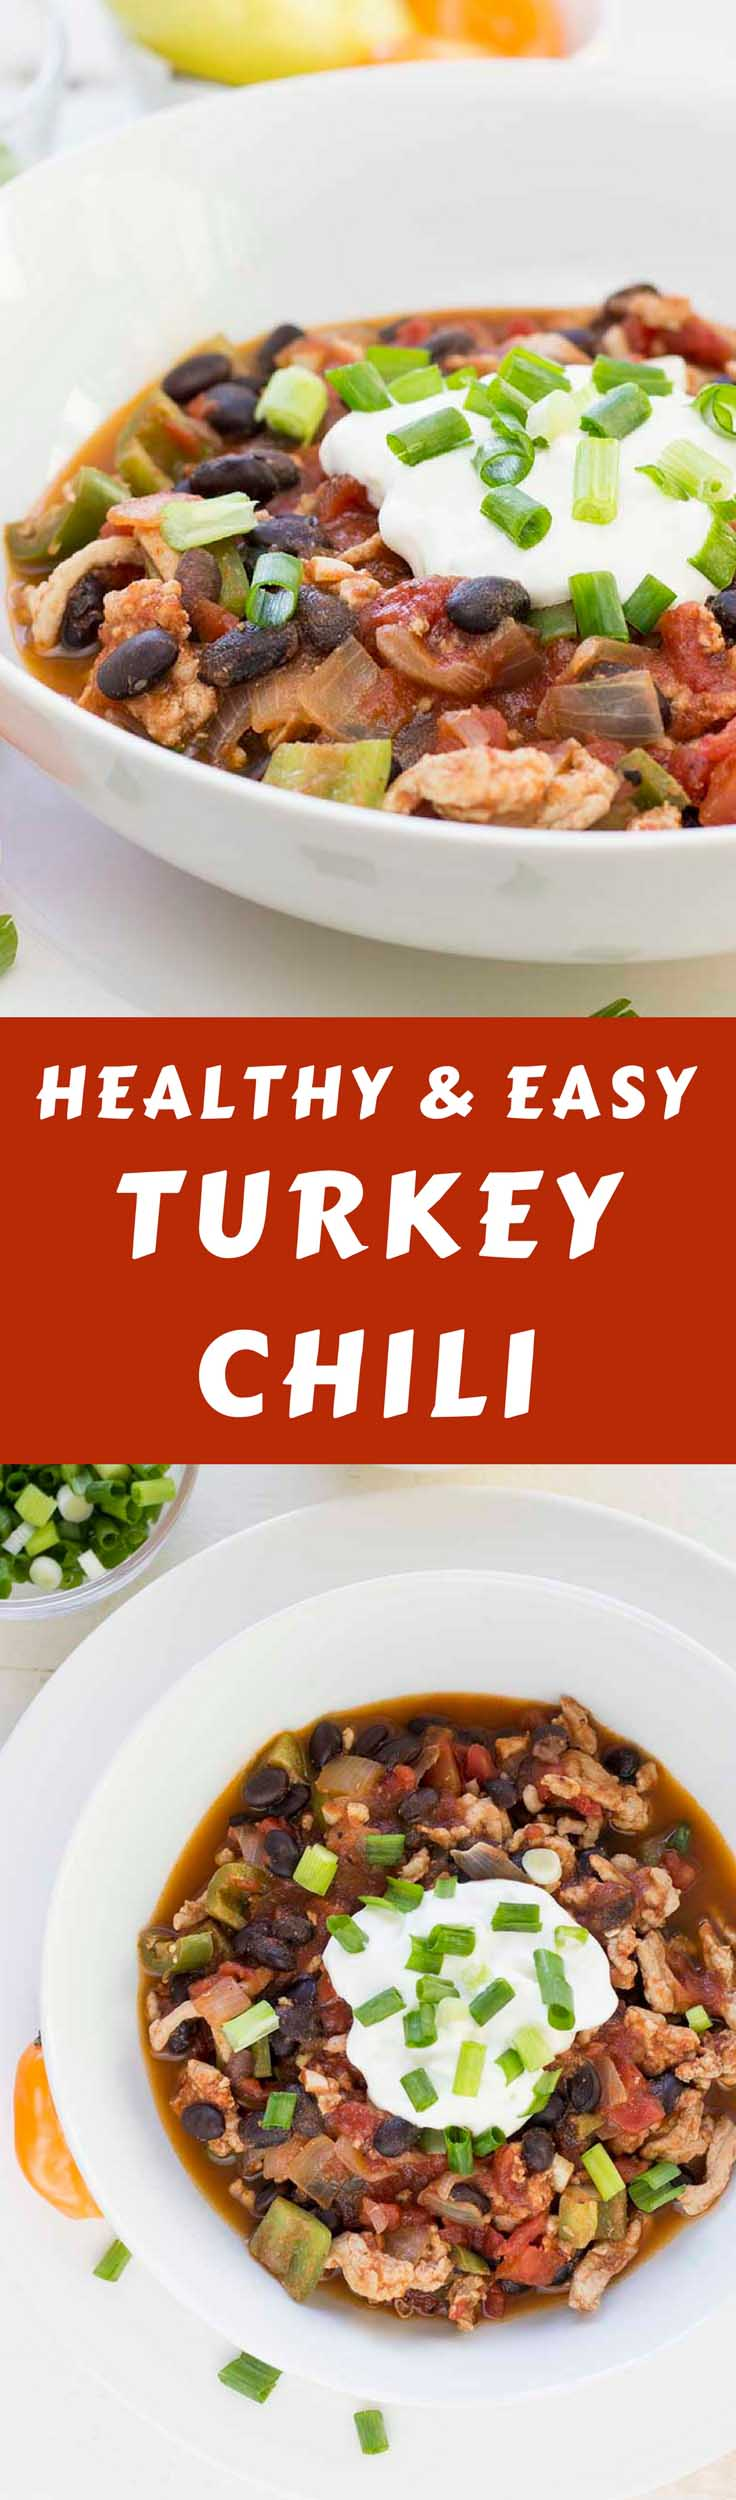 This Simple Turkey Chili recipe should be your dinner tonight! It's high in protein and relatively low in carbs and fat, making it the perfect healthy turkey chili recipe. #turkeychilirecipe #diabeticchili #healthyeating #healthyrecipes #diabetesdiet #diabetesrecipe #diabeticdiet #diabeticfood #diabeticrecipe #diabeticfriendly #lowcarb #lowcarbdiet #lowcarbrecipes